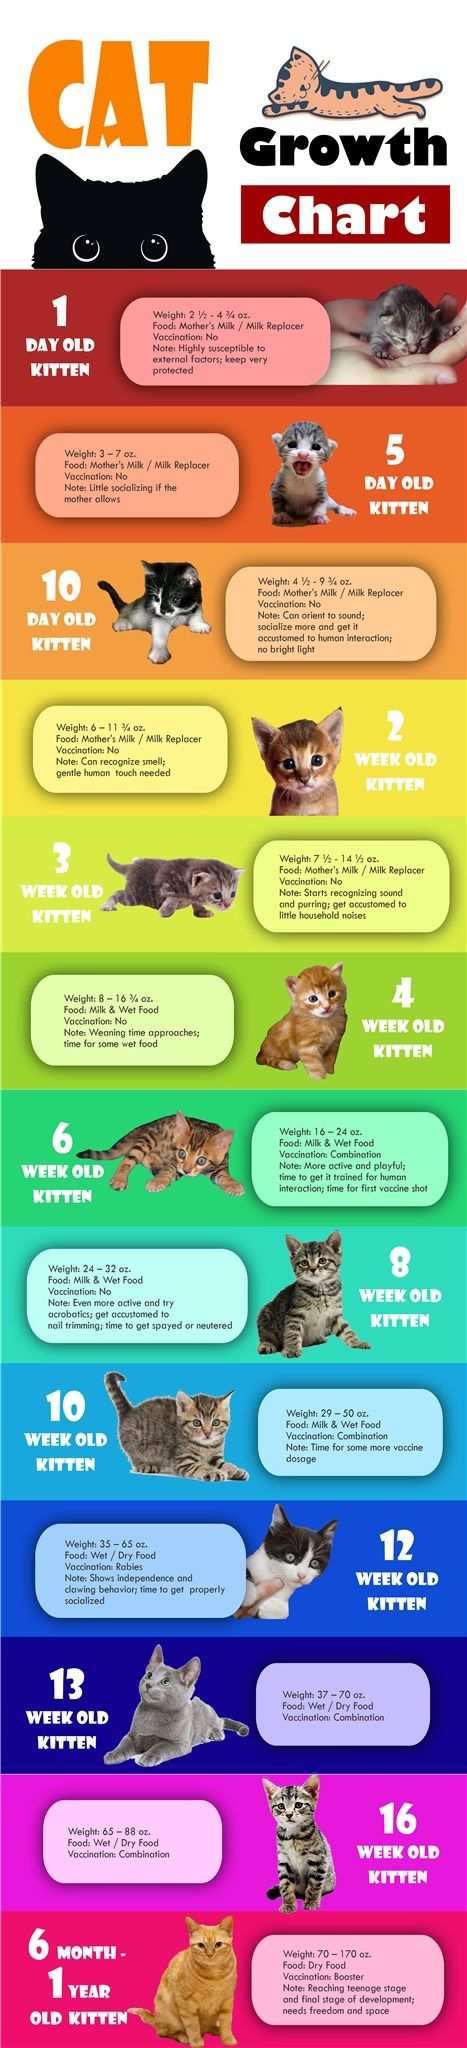 Best 25 Best cat food ideas on Pinterest